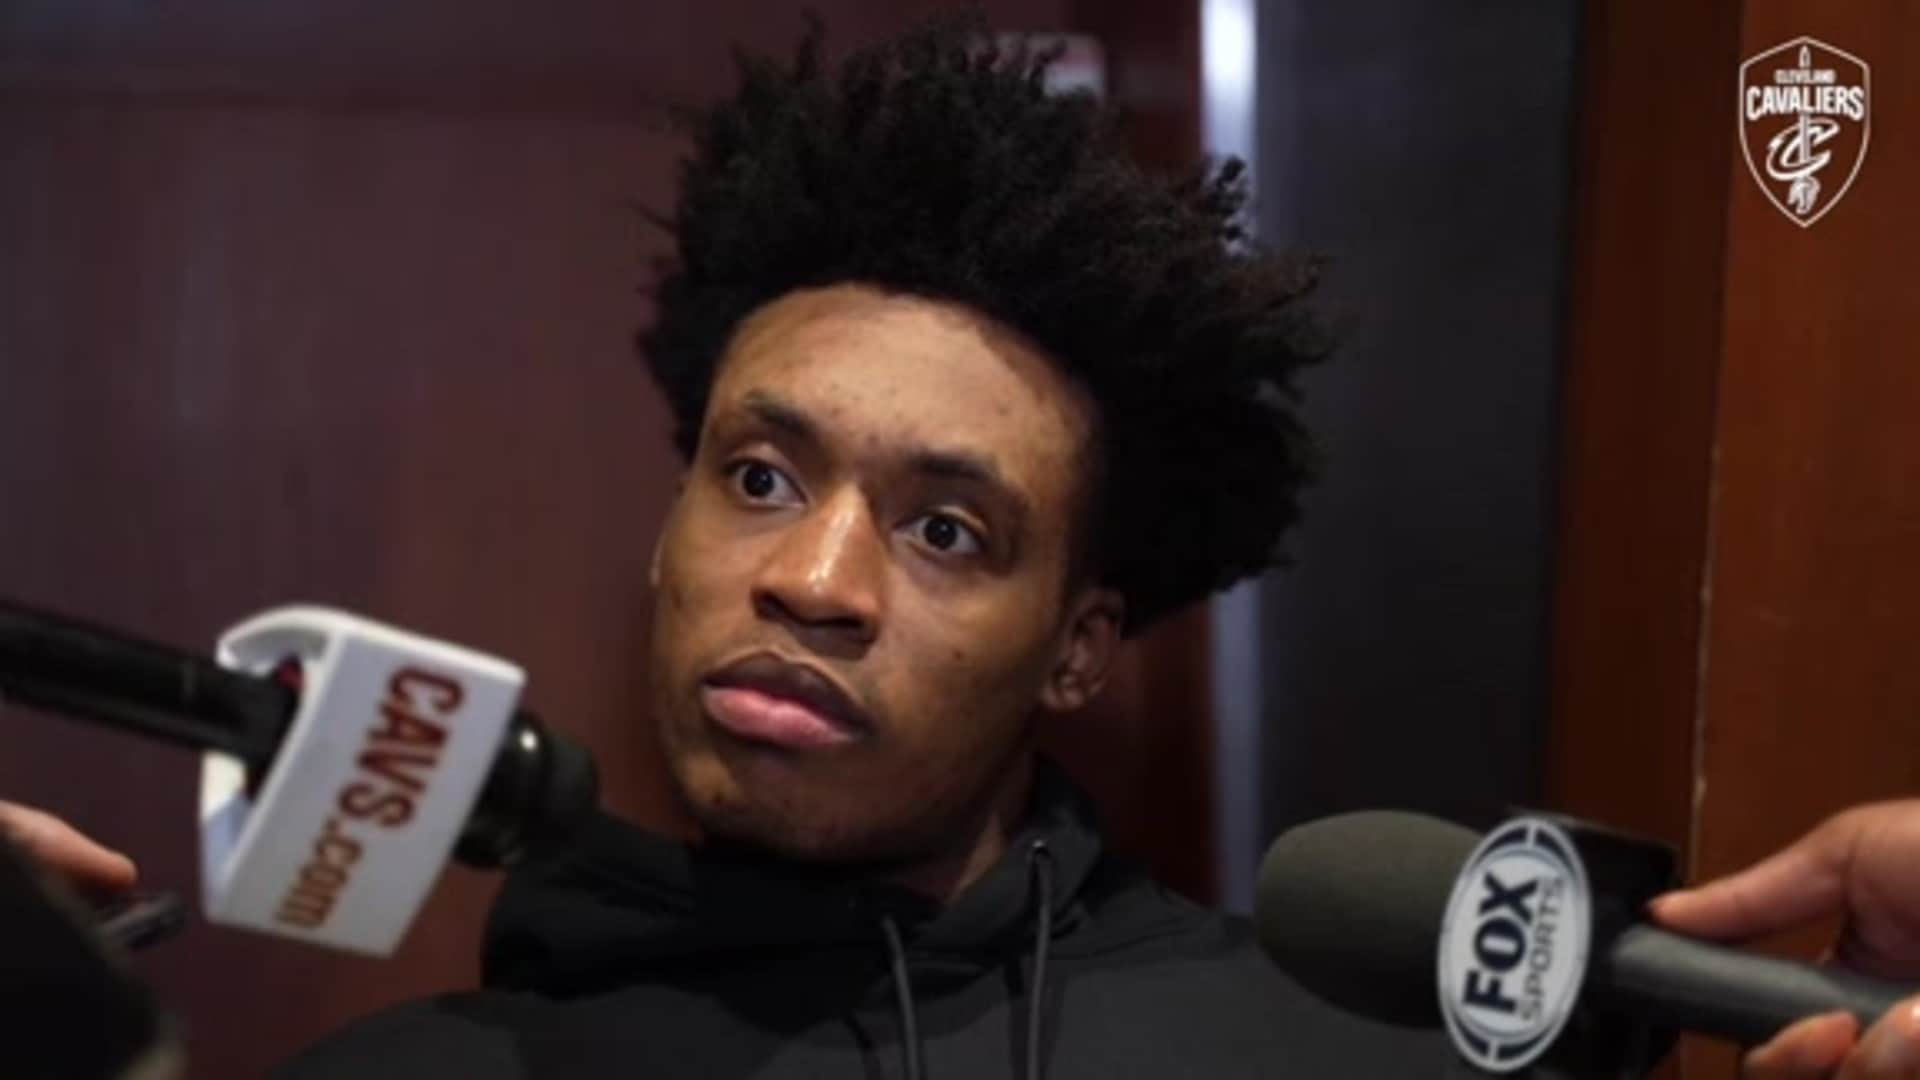 Cavs at Pelicans Postgame: Collin Sexton